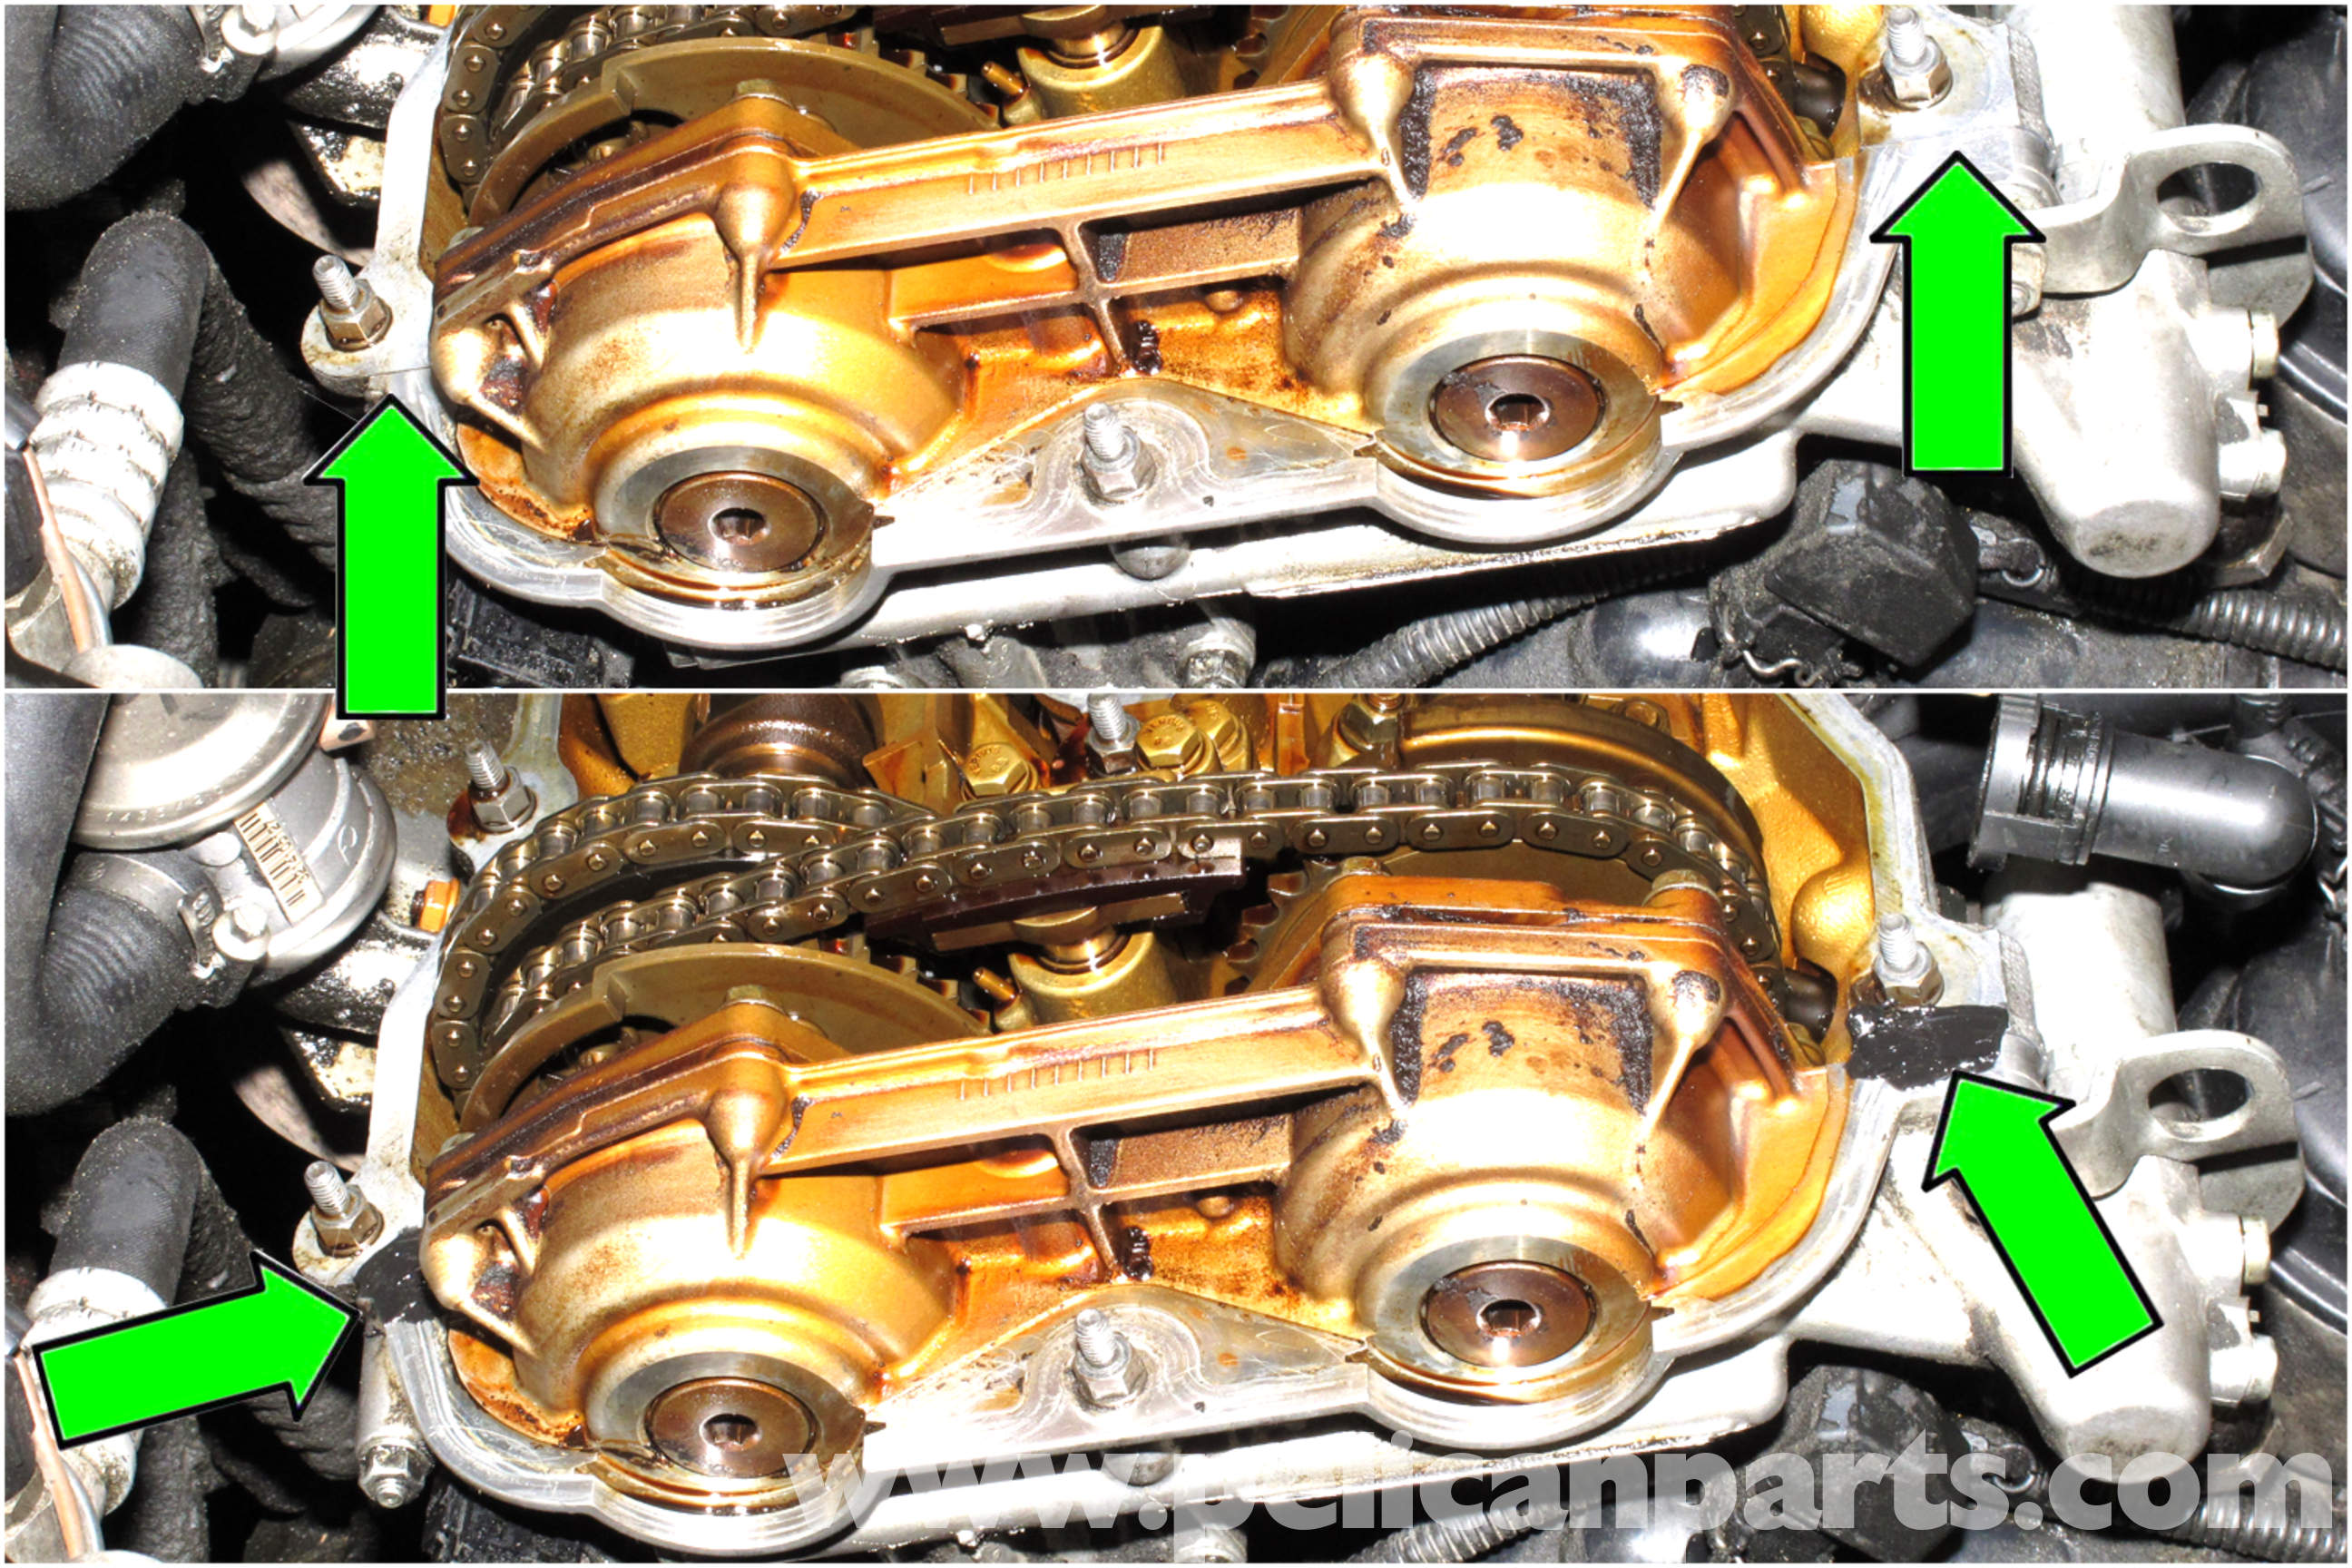 1996 Geo Metro Engine Diagram Bmw E39 5 Series Valve Cover Gasket Removal 1997 2003 525i 528i Large Image Extra